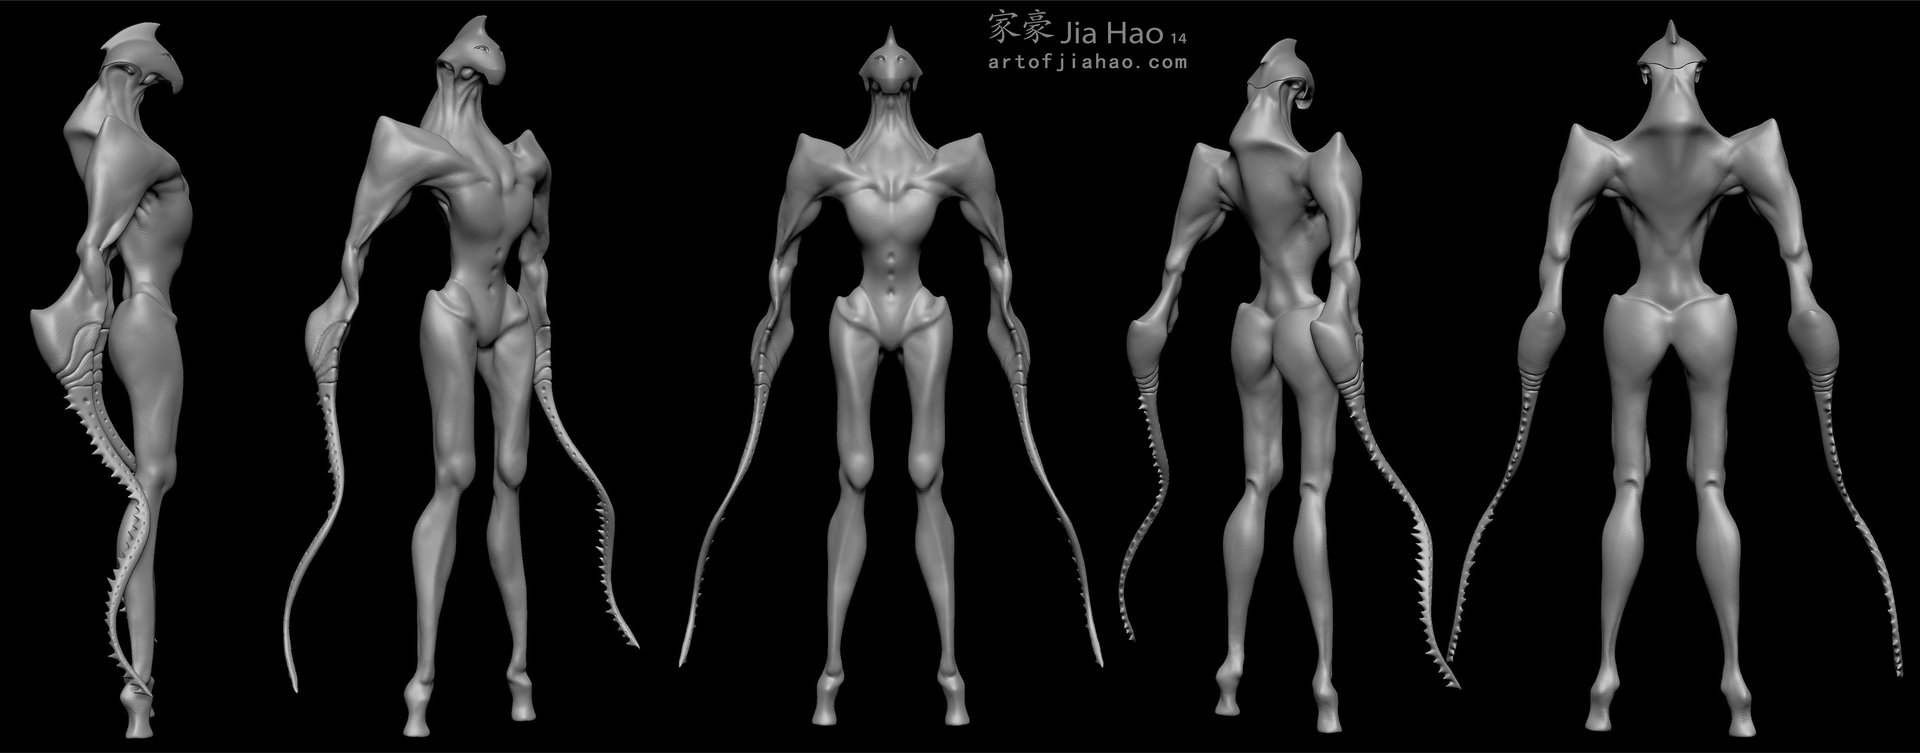 Jia hao 2014 07 gladiator 1 views